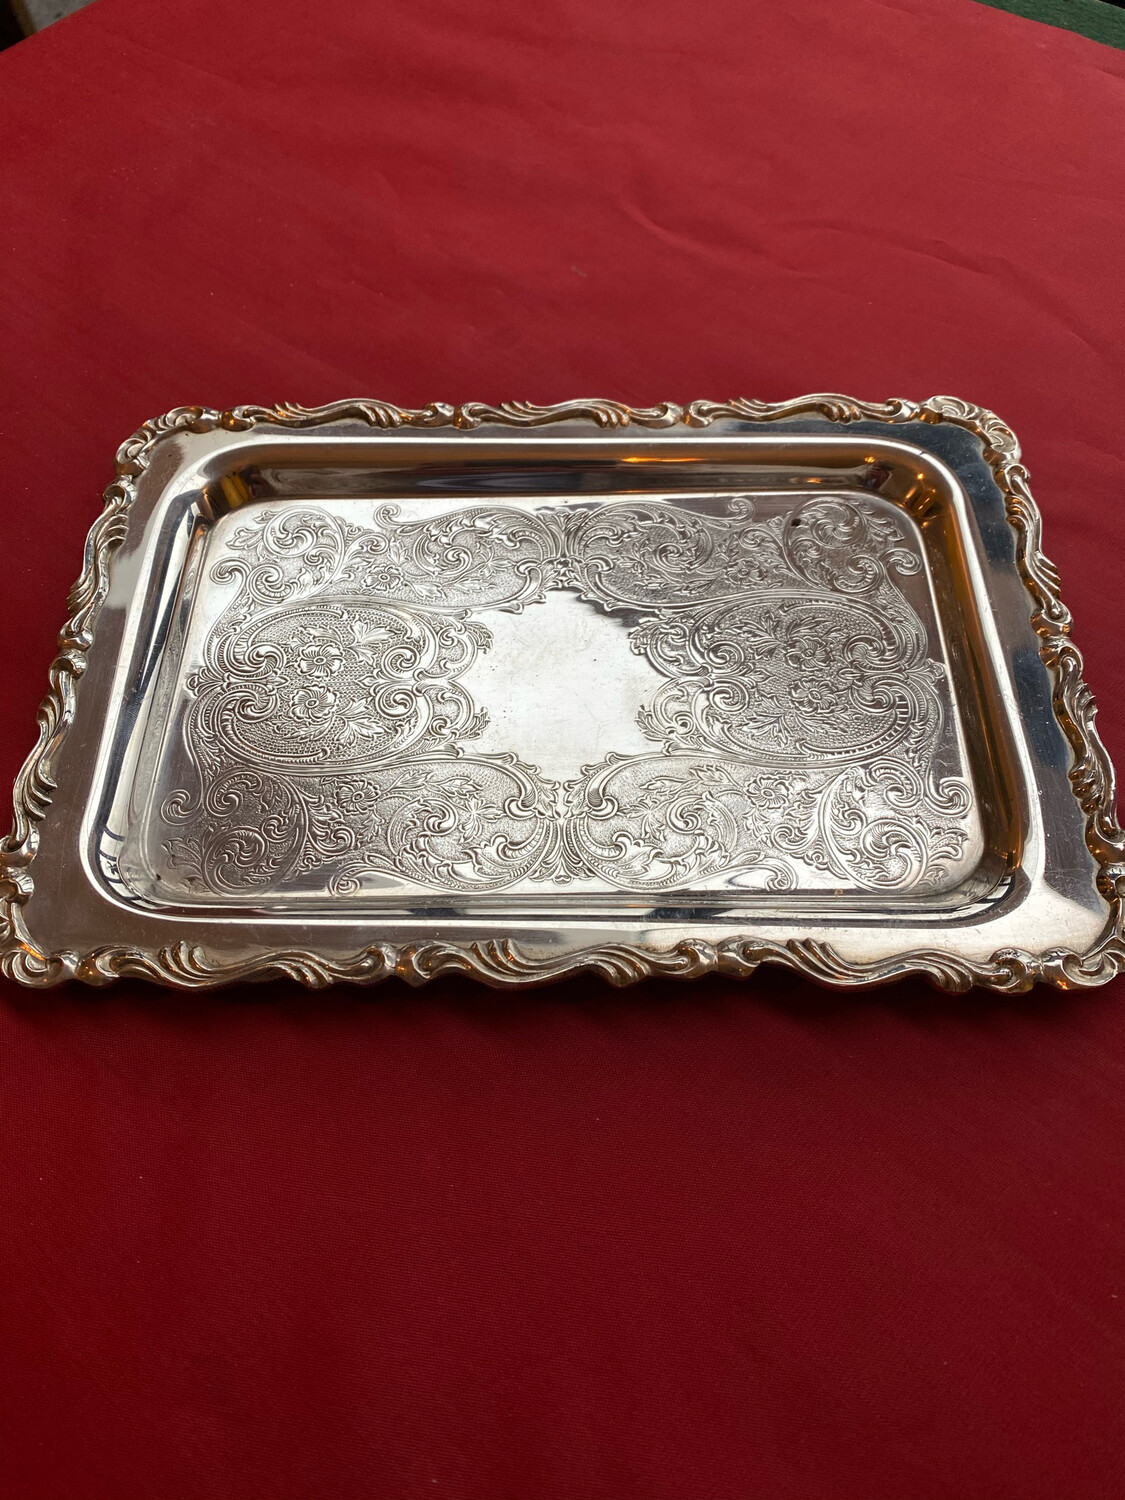 Medium Silver Plated Serving Tray With Engraving & Embossing Throughout